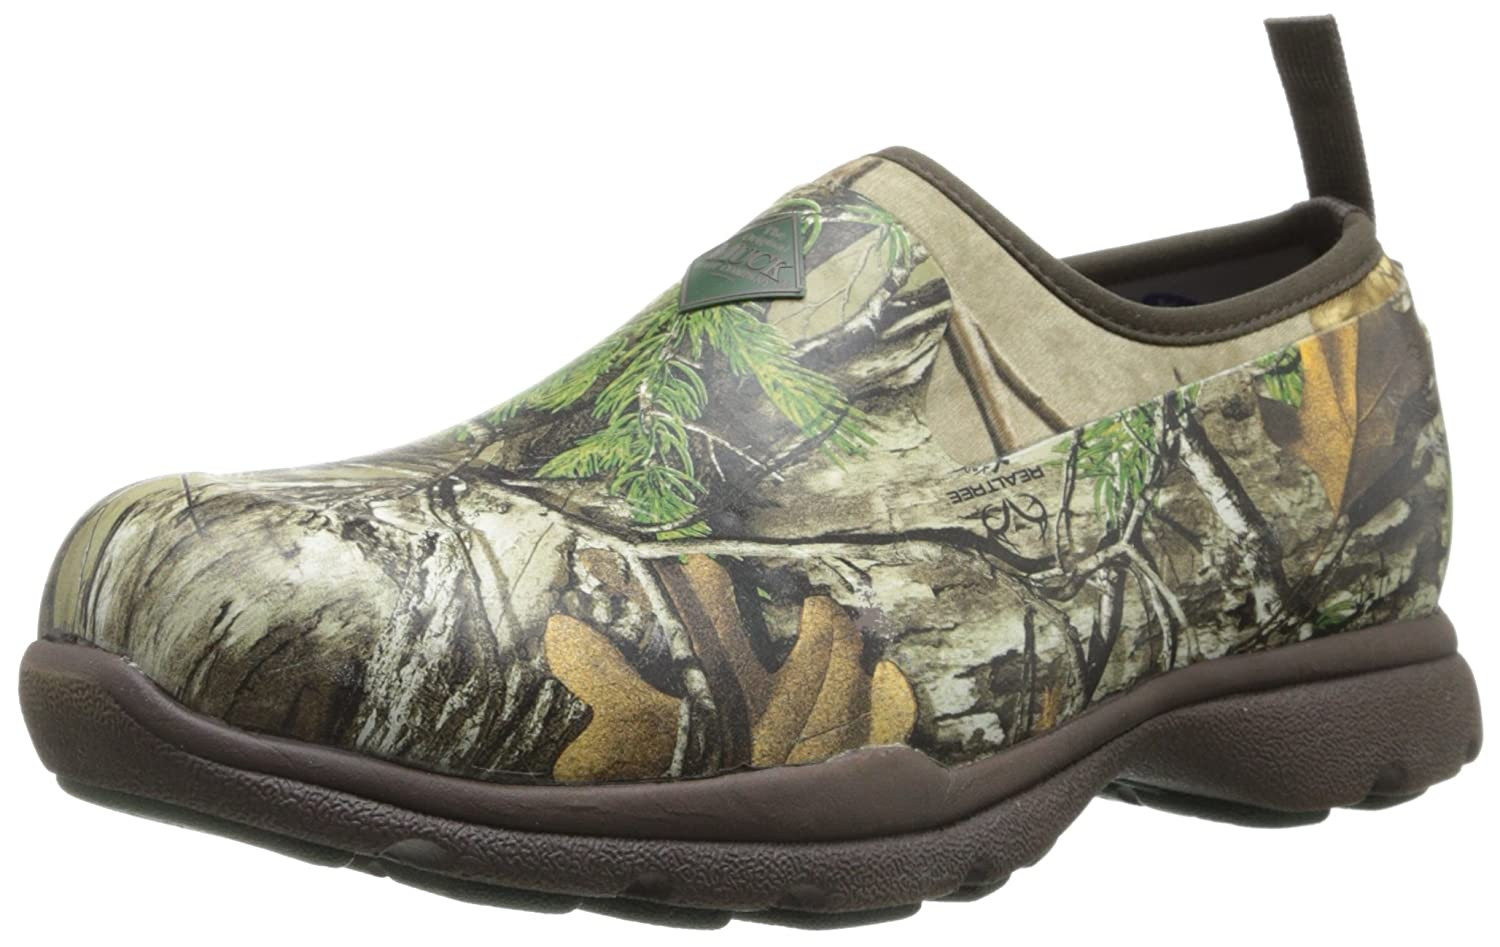 MuckBoots Men's Excursion Pro Low Shoe B00FFX4NX2 11 D(M) US|Realtree Xtra